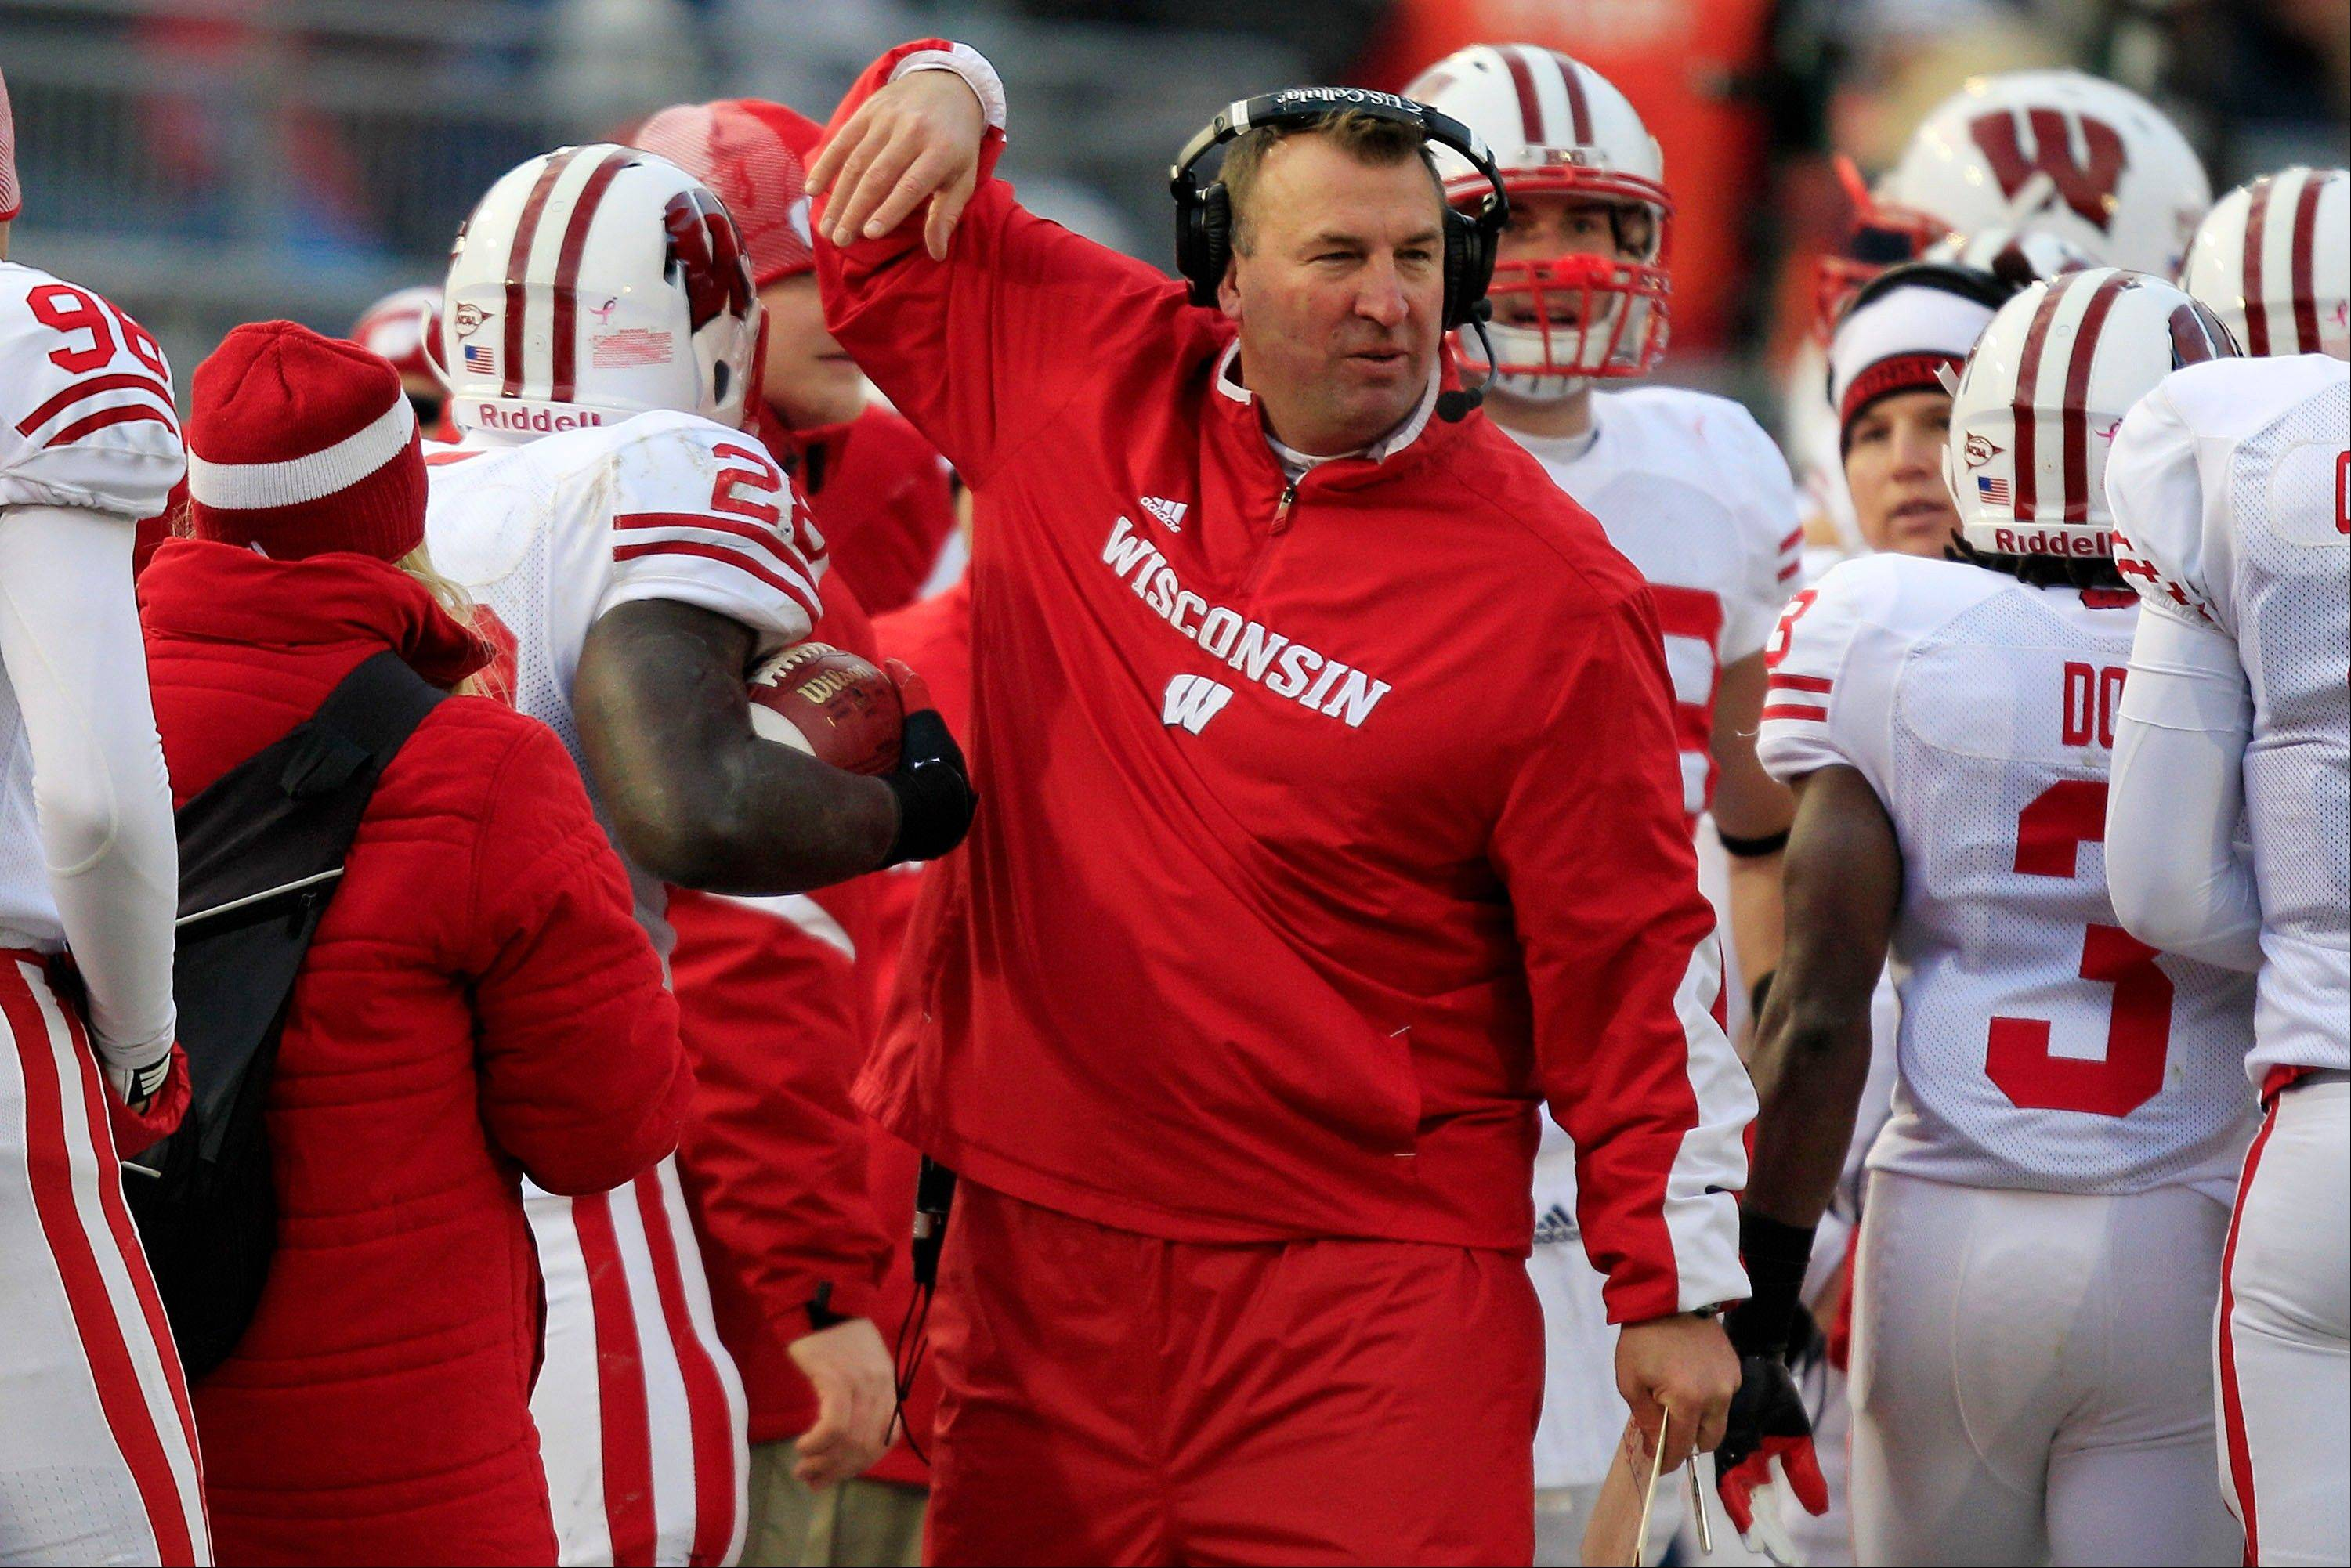 Wisconsin head coach Bret Bielema, center, celebrates with Wisconsin running back Montee Ball after a touchdown run during the first quarter of Saturday's at Penn State. Wisconsin lost in overtime.